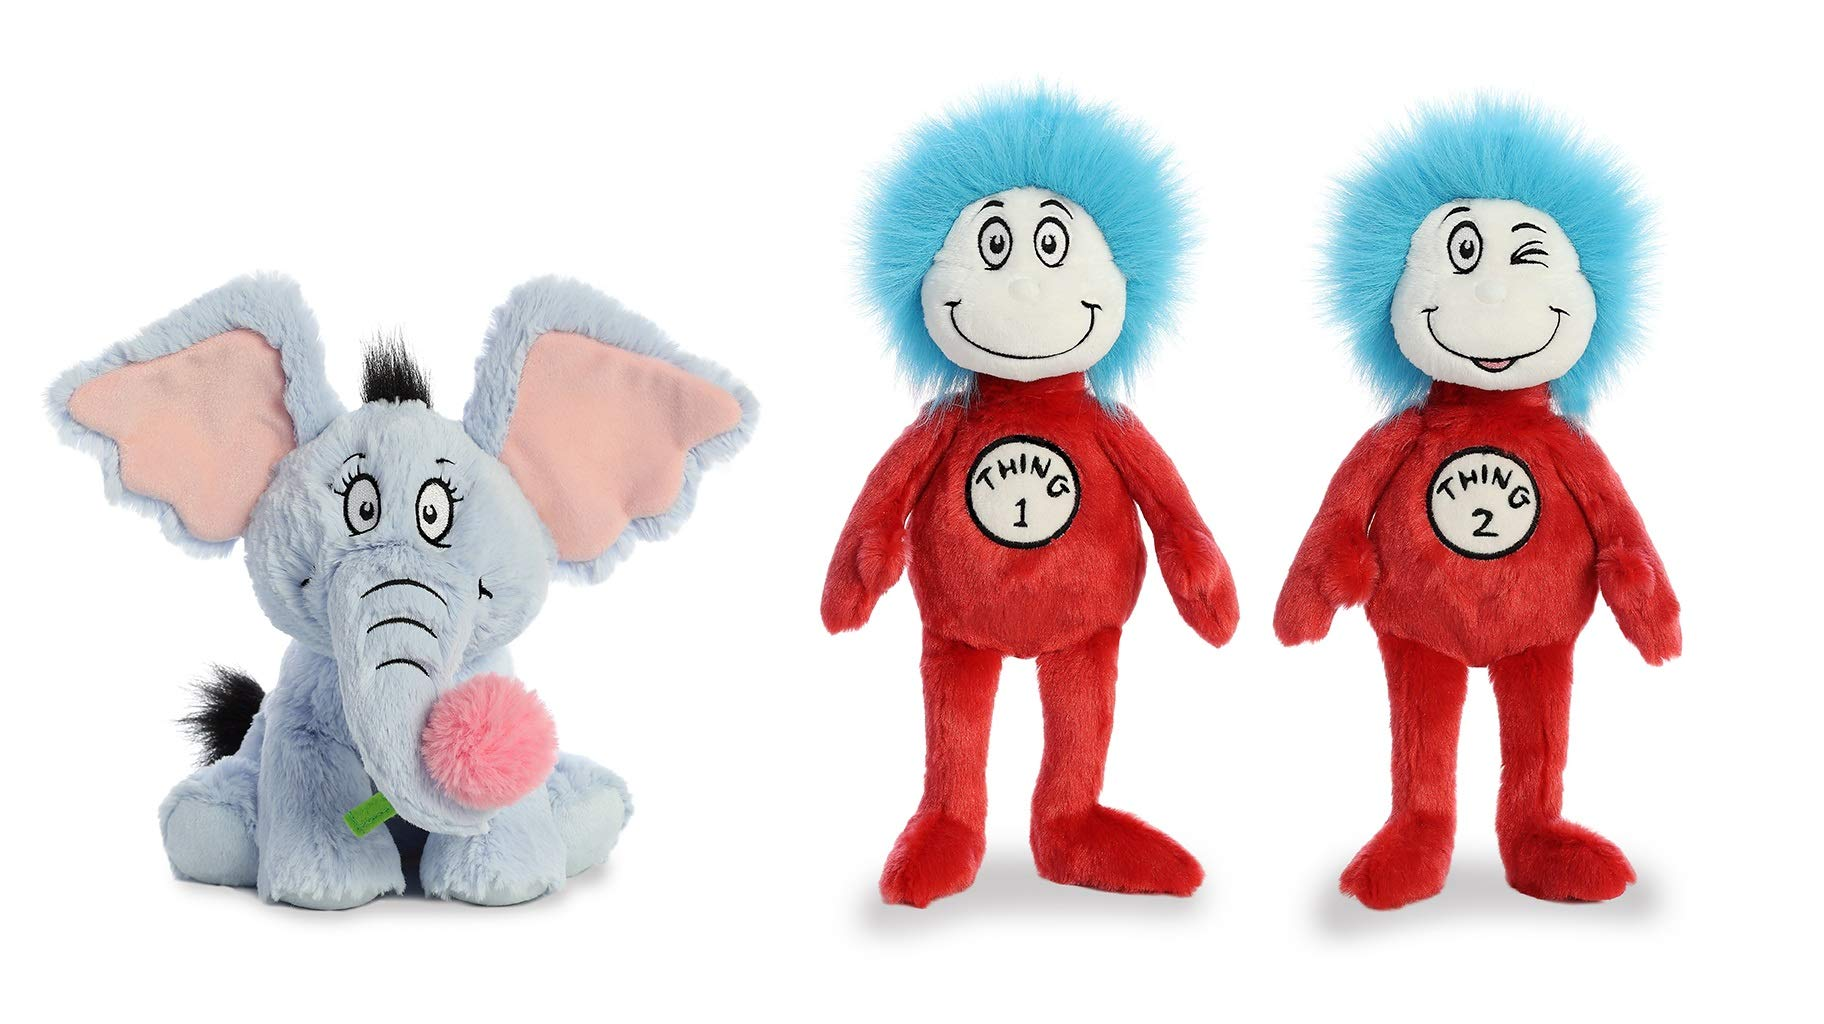 Aurora Plush Bundle Set of 3 Cat in The Hat Toys - Dr Seuss Toys Cat in The Hat Stuffed Plush Toys 12'' Thing 1 & Thing 2, and 12'' Horton Hears a Who Plush Elephant by RfR Bundles